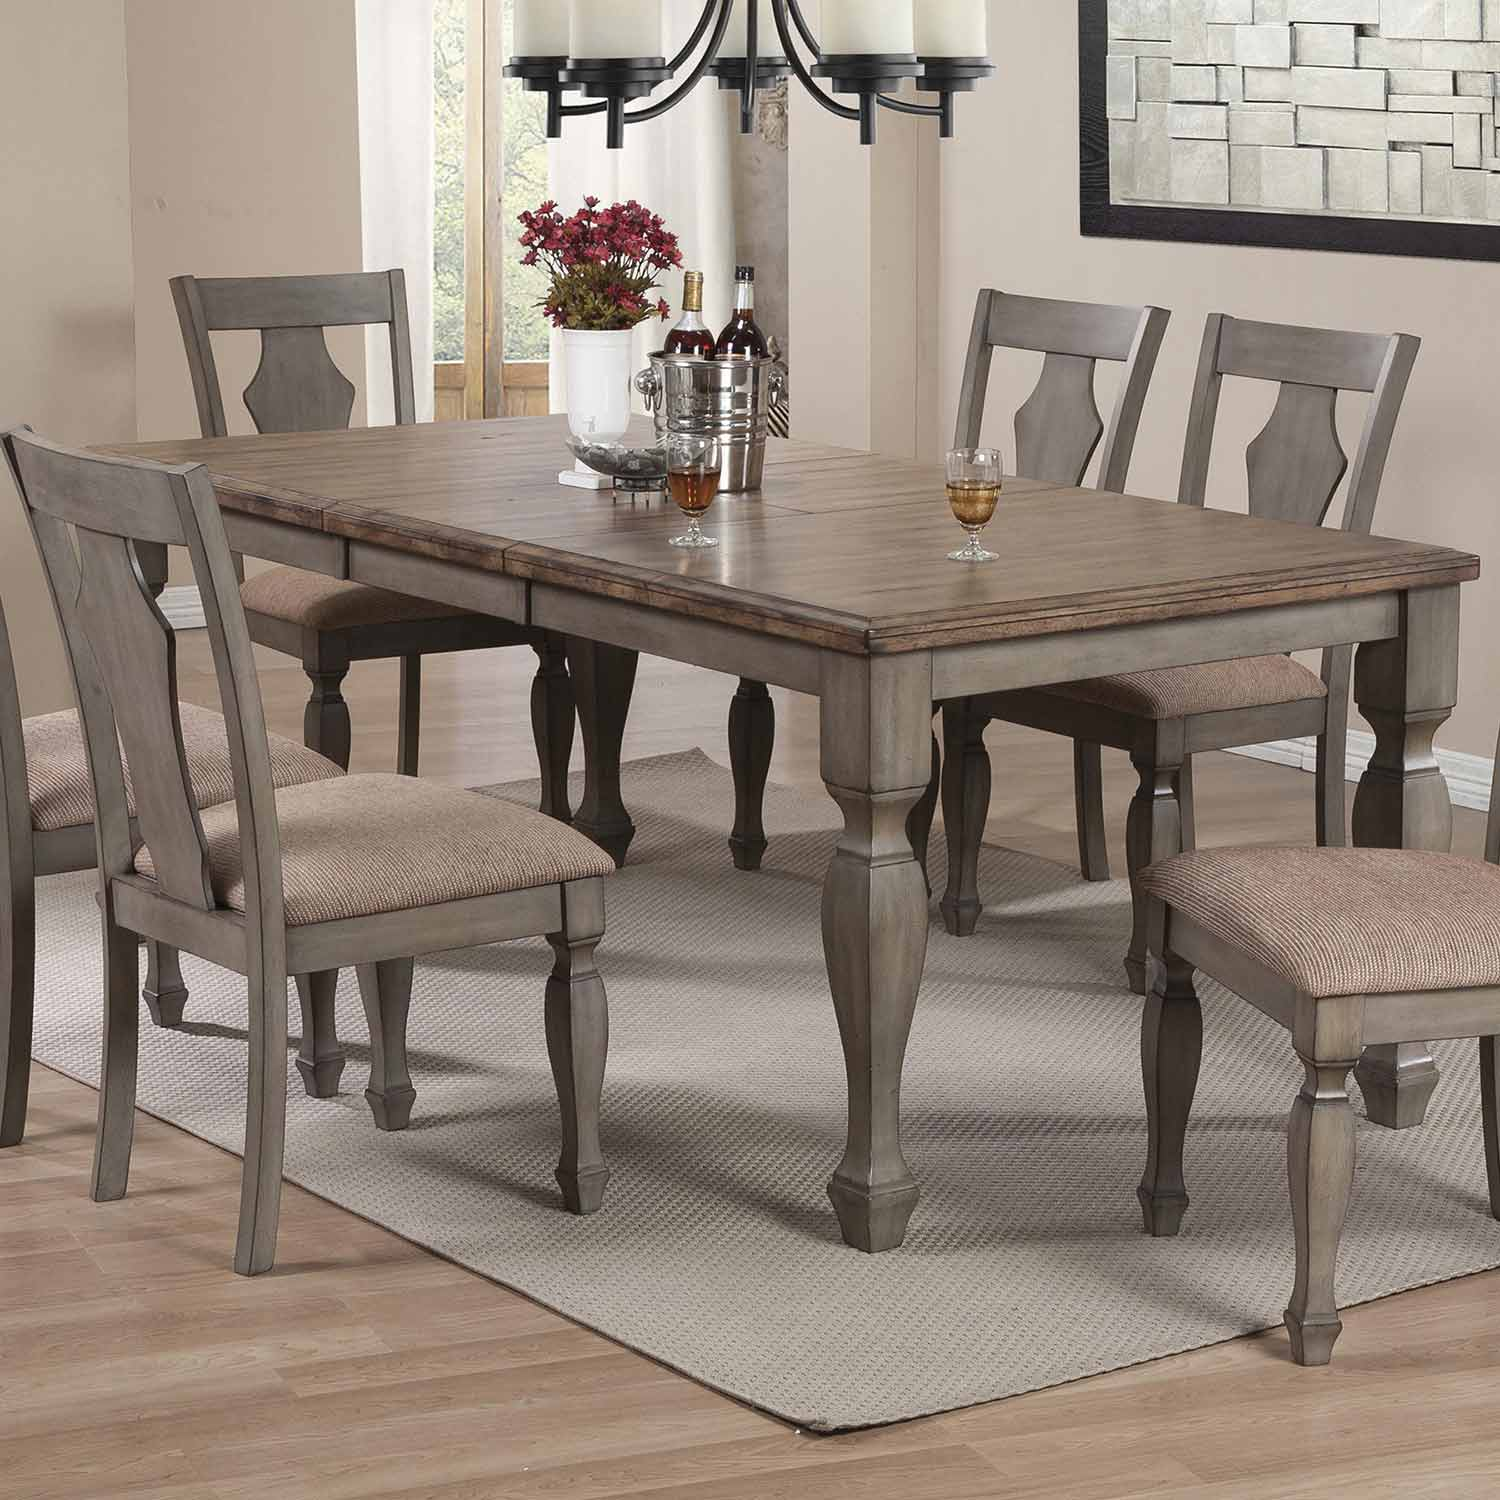 Coaster Riverbend Dining Table Wheat Antique Grey at